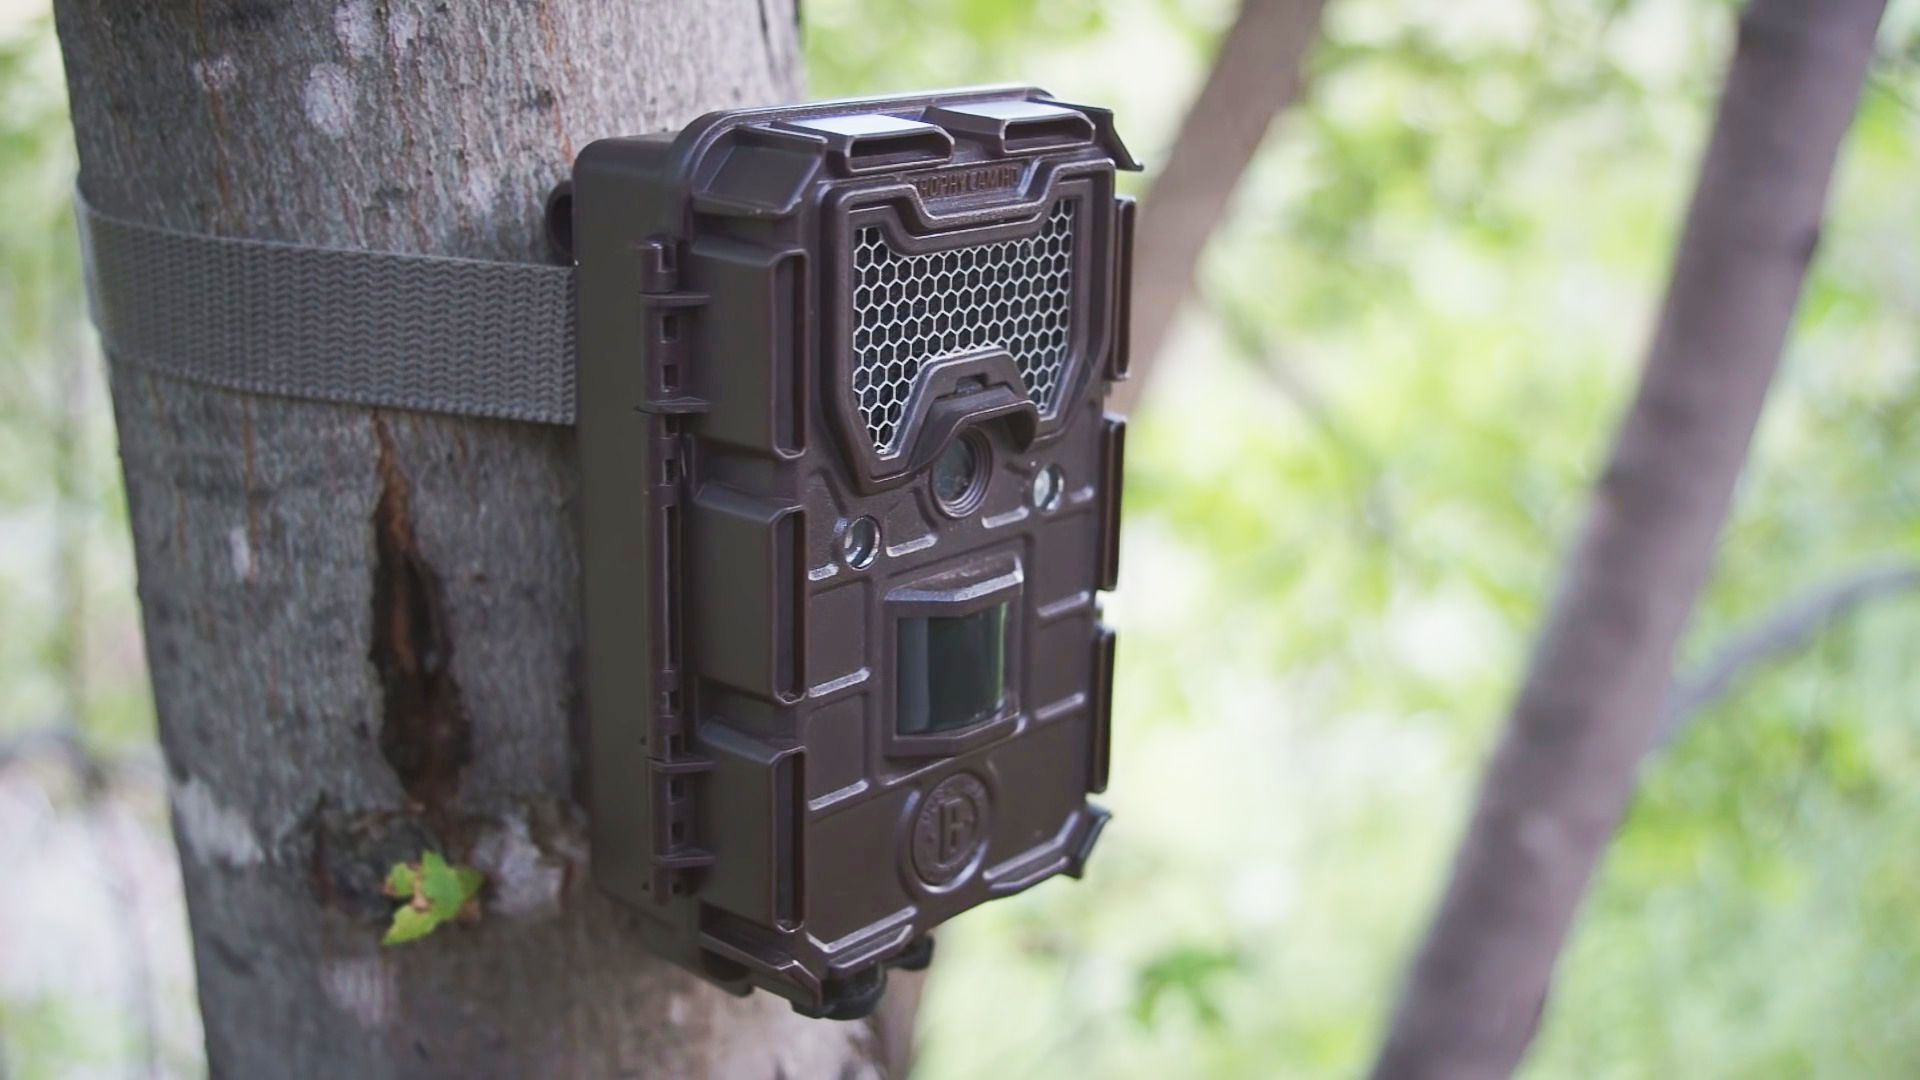 Bushnell Trophy Essential E2 12 MP Trail Camera Review